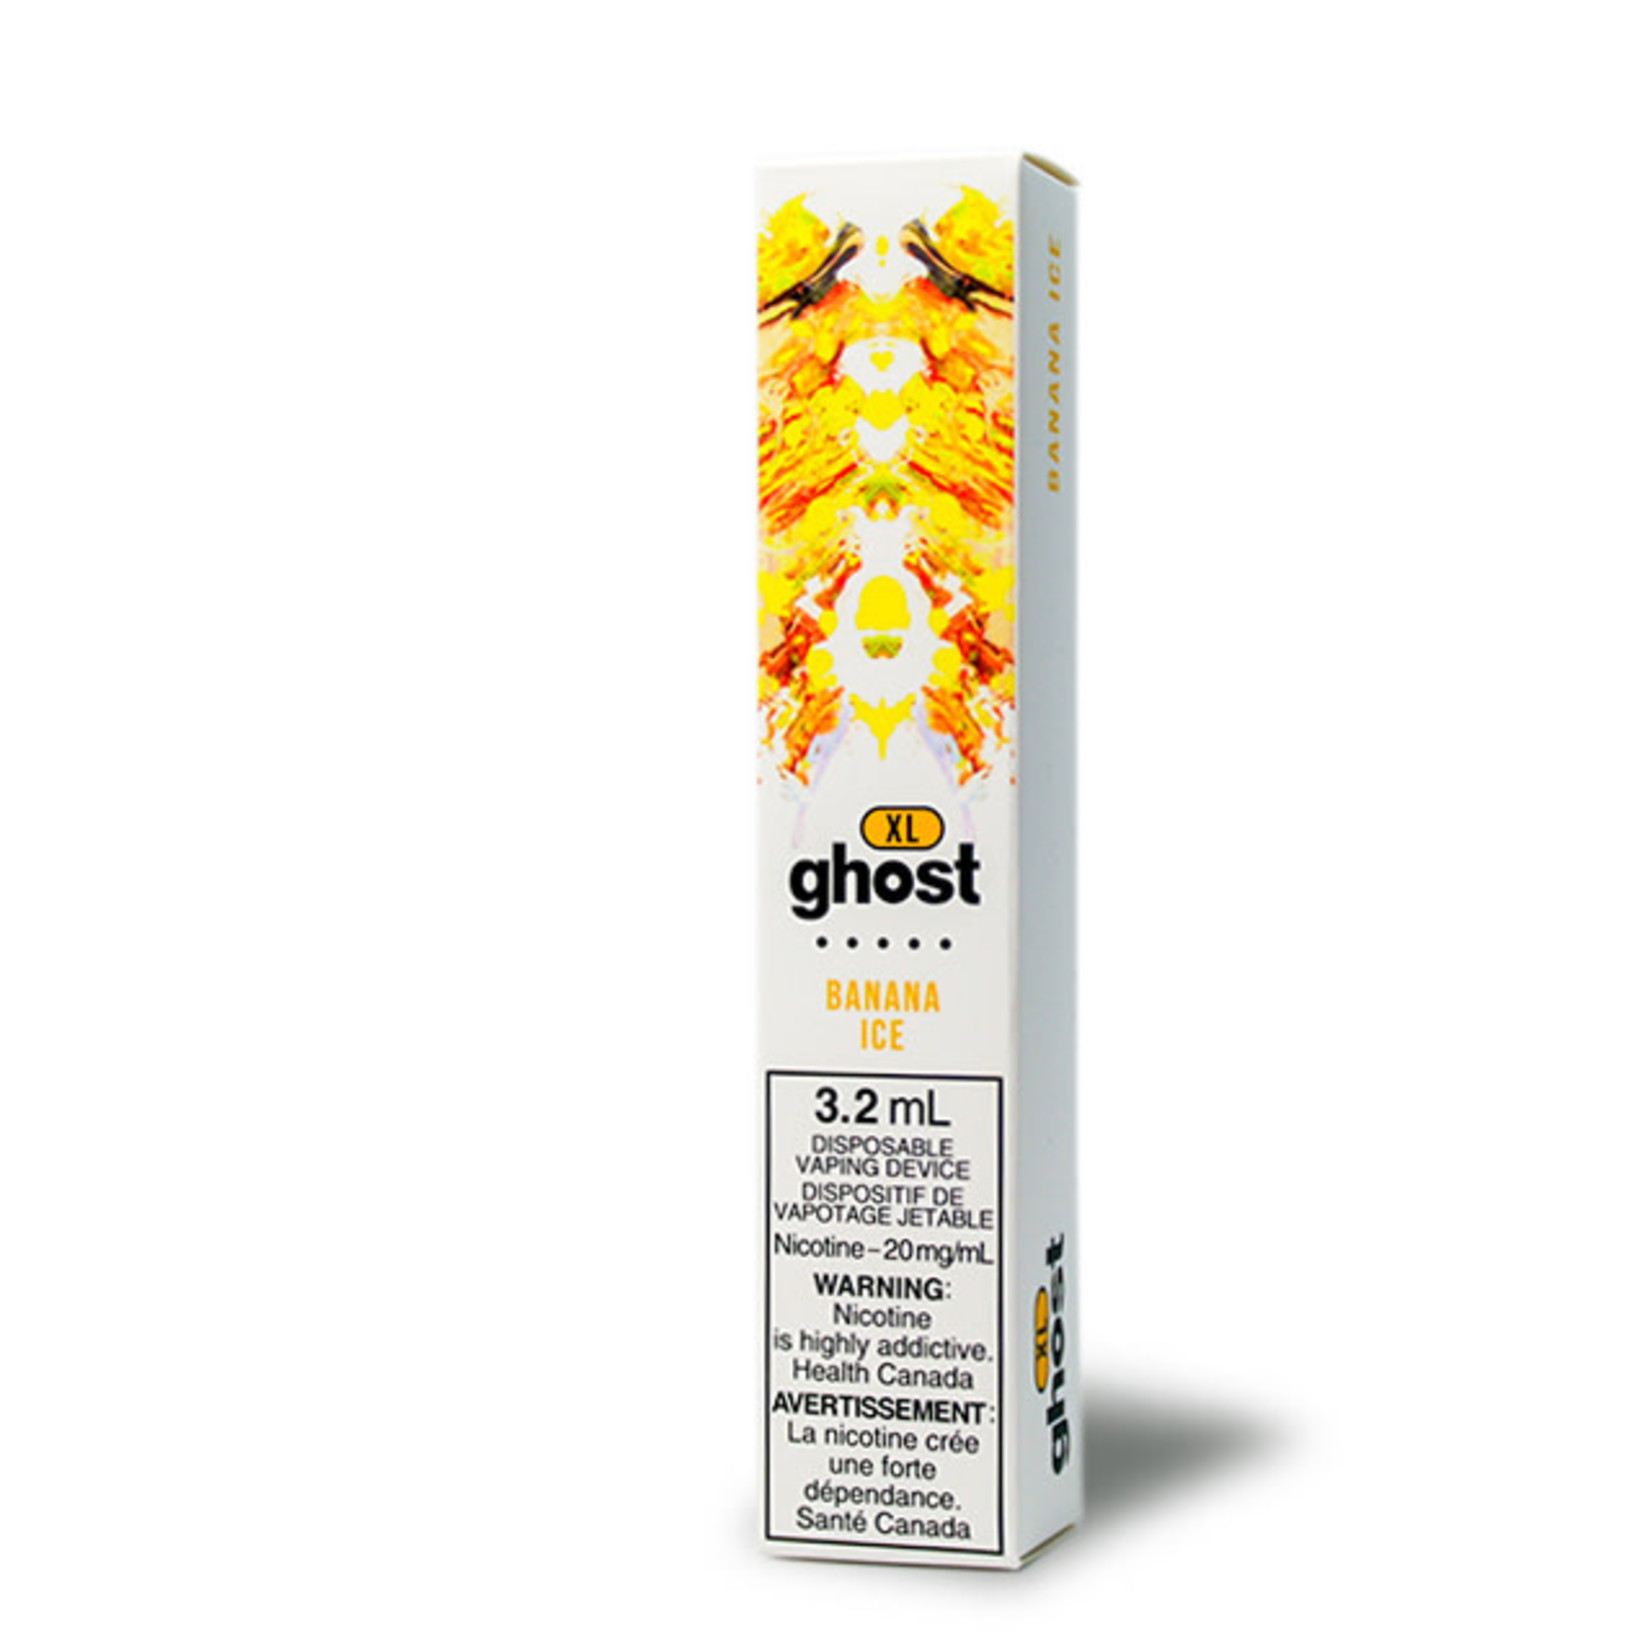 GHOST XL 800 PUFF Disposable Banana Ice